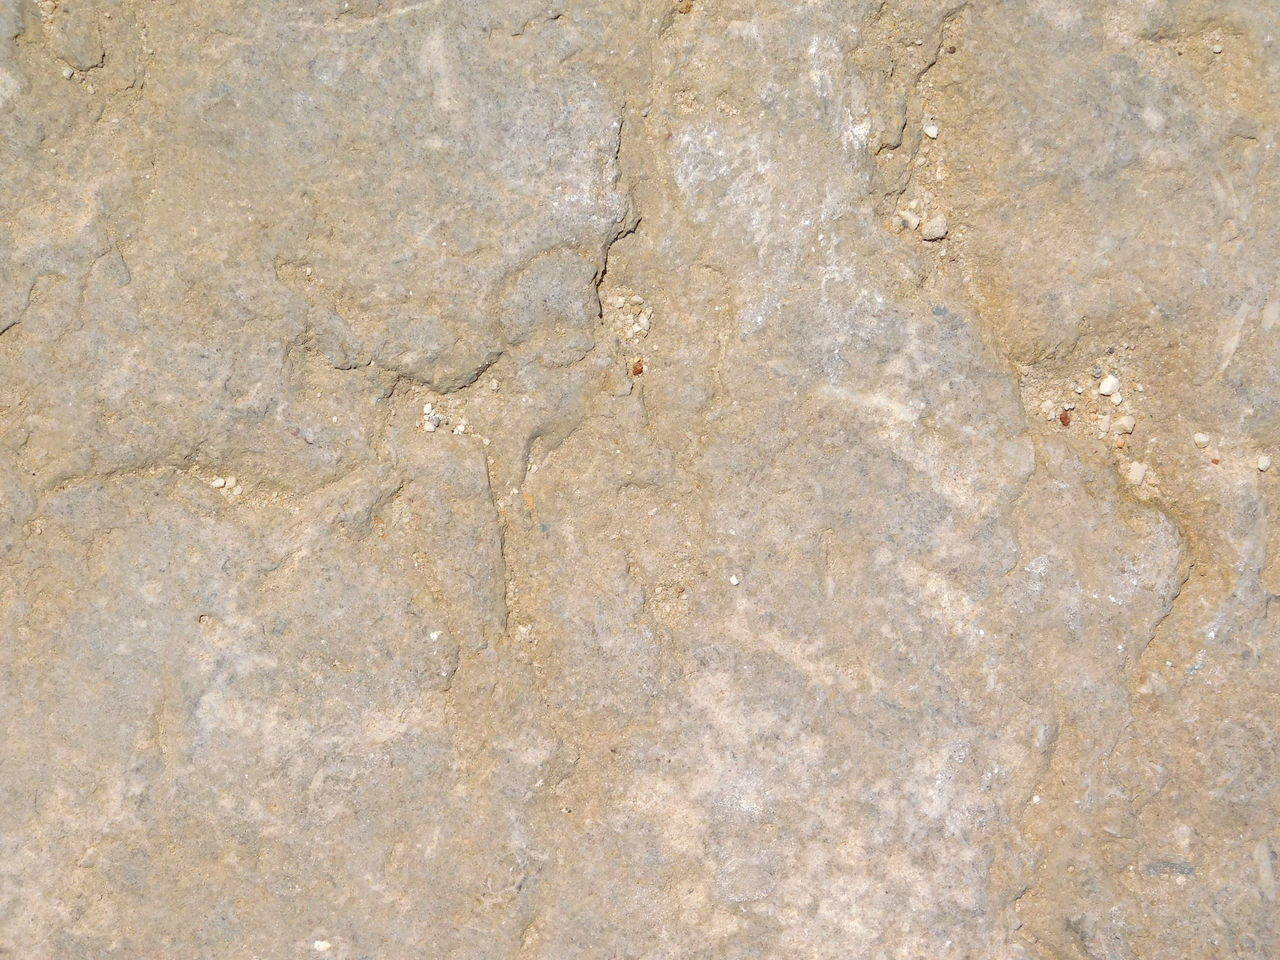 Stone texture Abstract Architecture Backgrounds Close-up Day Full Frame Marble Nature No People Outdoors Pattern Rock - Object Smooth Stone - Object Stone Material Textured